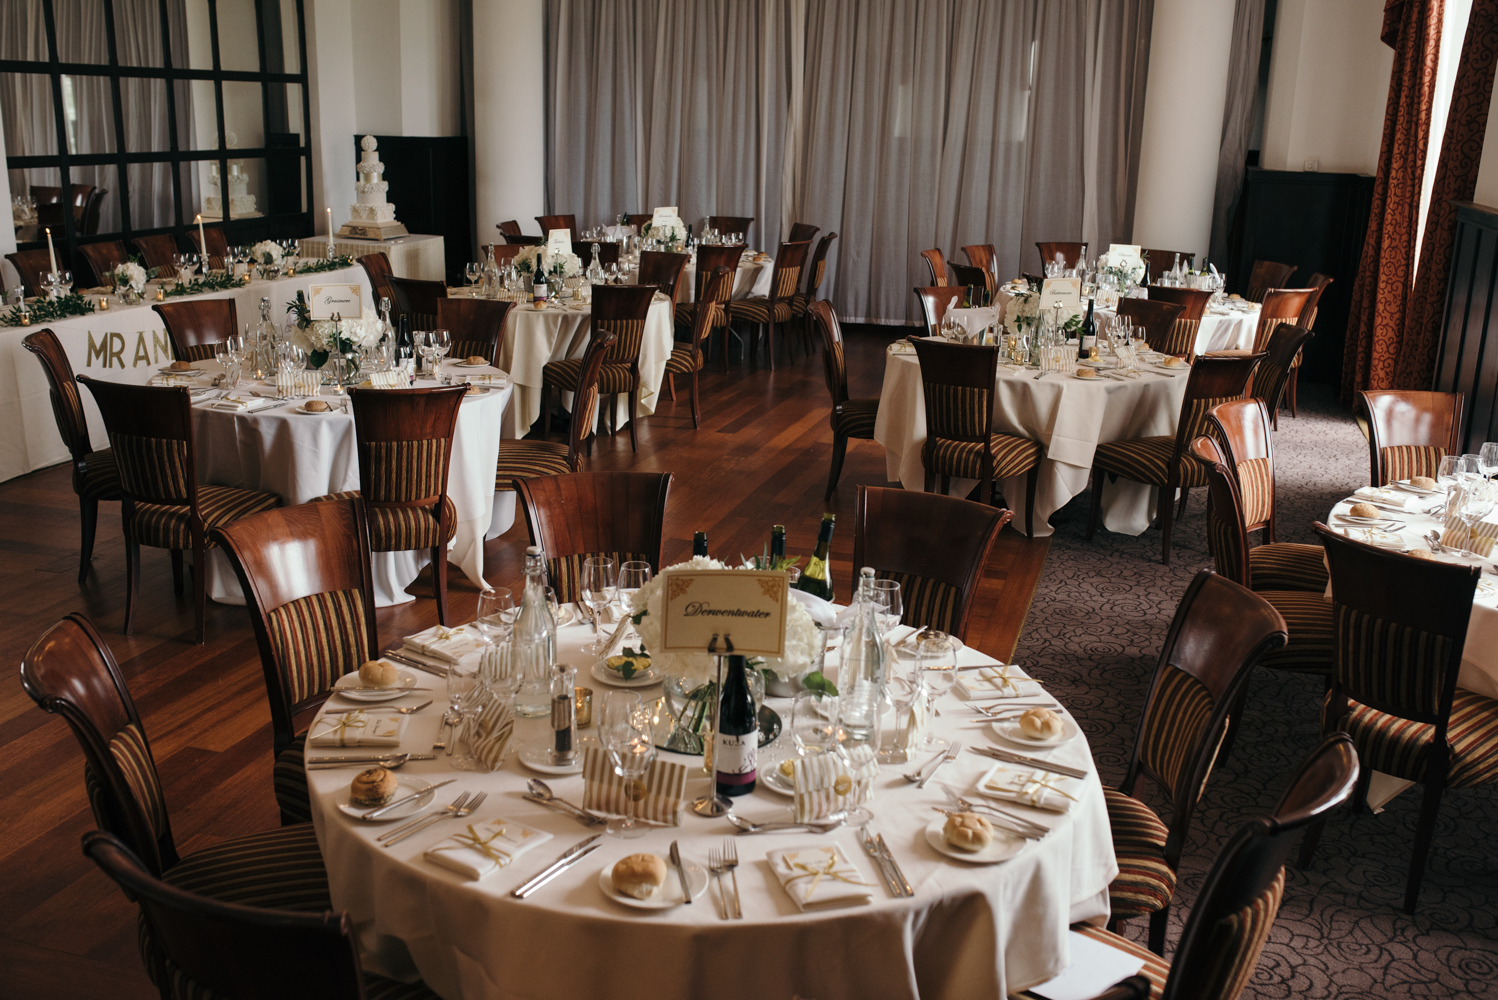 The wedding breakfast room all set up ready to receive wedding guests